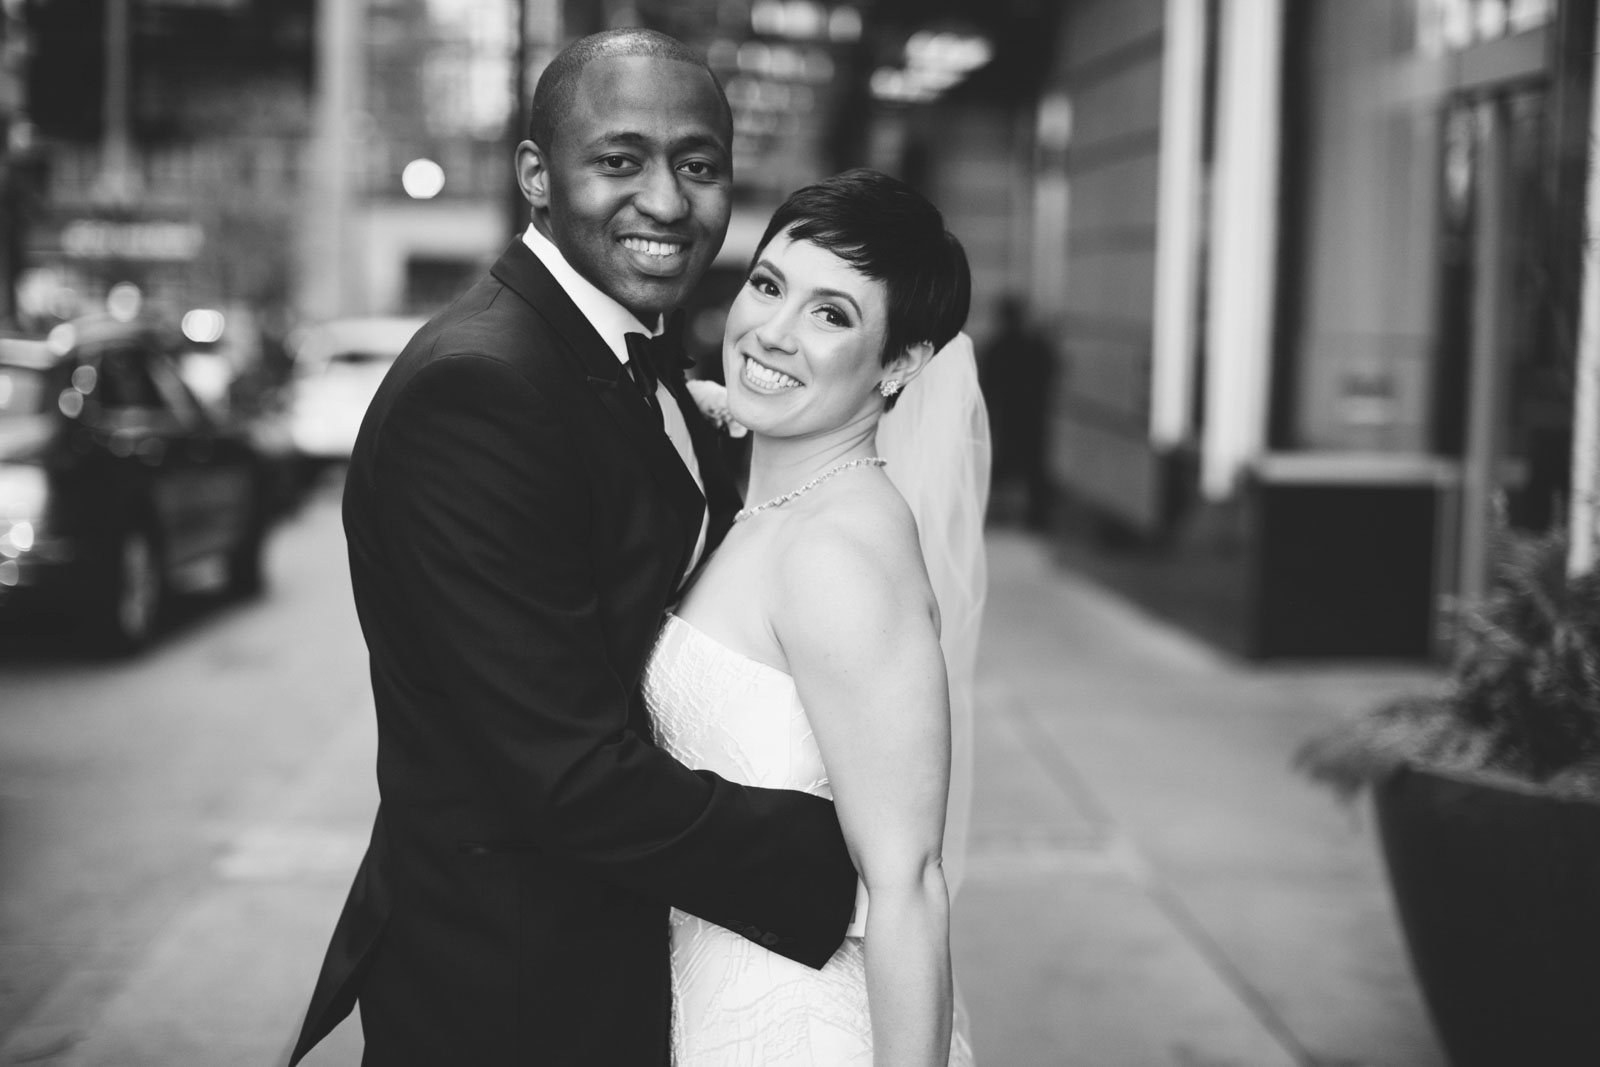 black and white intimate portrait of bride and groom on the streets of Boston in winter